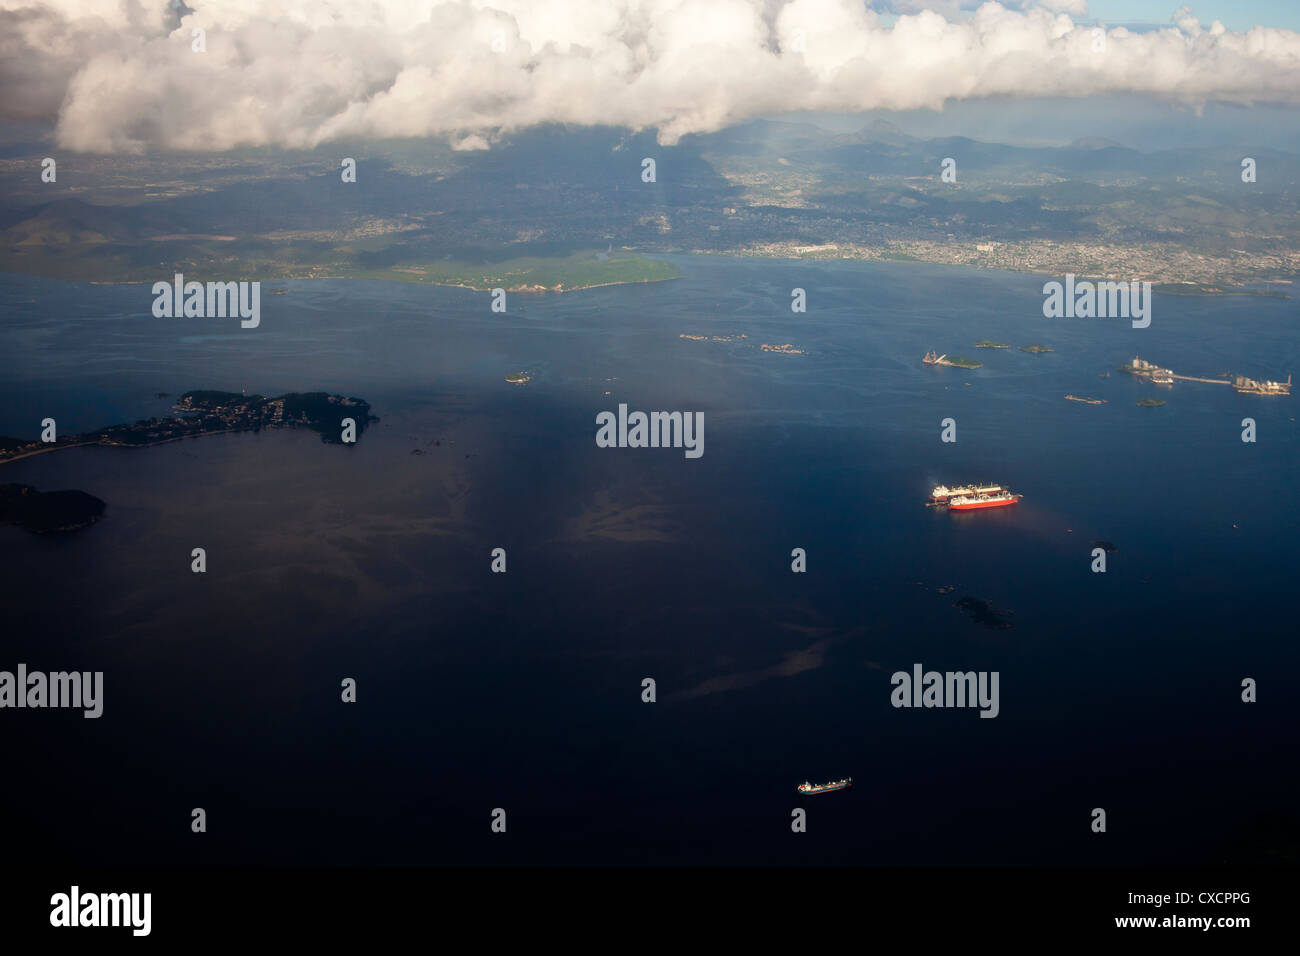 Oil spill near Paqueta island Guanabara Bay Rio de Janeiro Brazil  environmental degradation water pollution - Stock Image